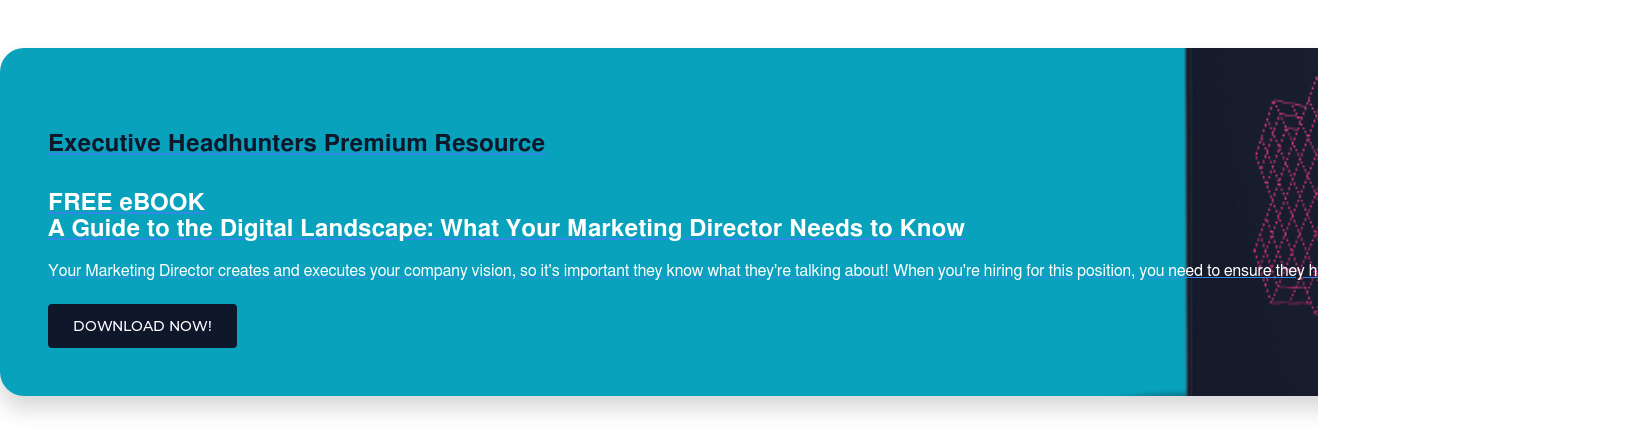 Executive Headhunters Premium Resource  FREE eBOOK A Guide to the Digital Landscape: What Your Marketing Director Needs to Know  Your Marketing Director creates and executes your company vision, so it's  important they know what they're talking about! When you're hiring for this  position, you need to ensure they have the digital skills needed to succeed. DOWNLOAD NOW!